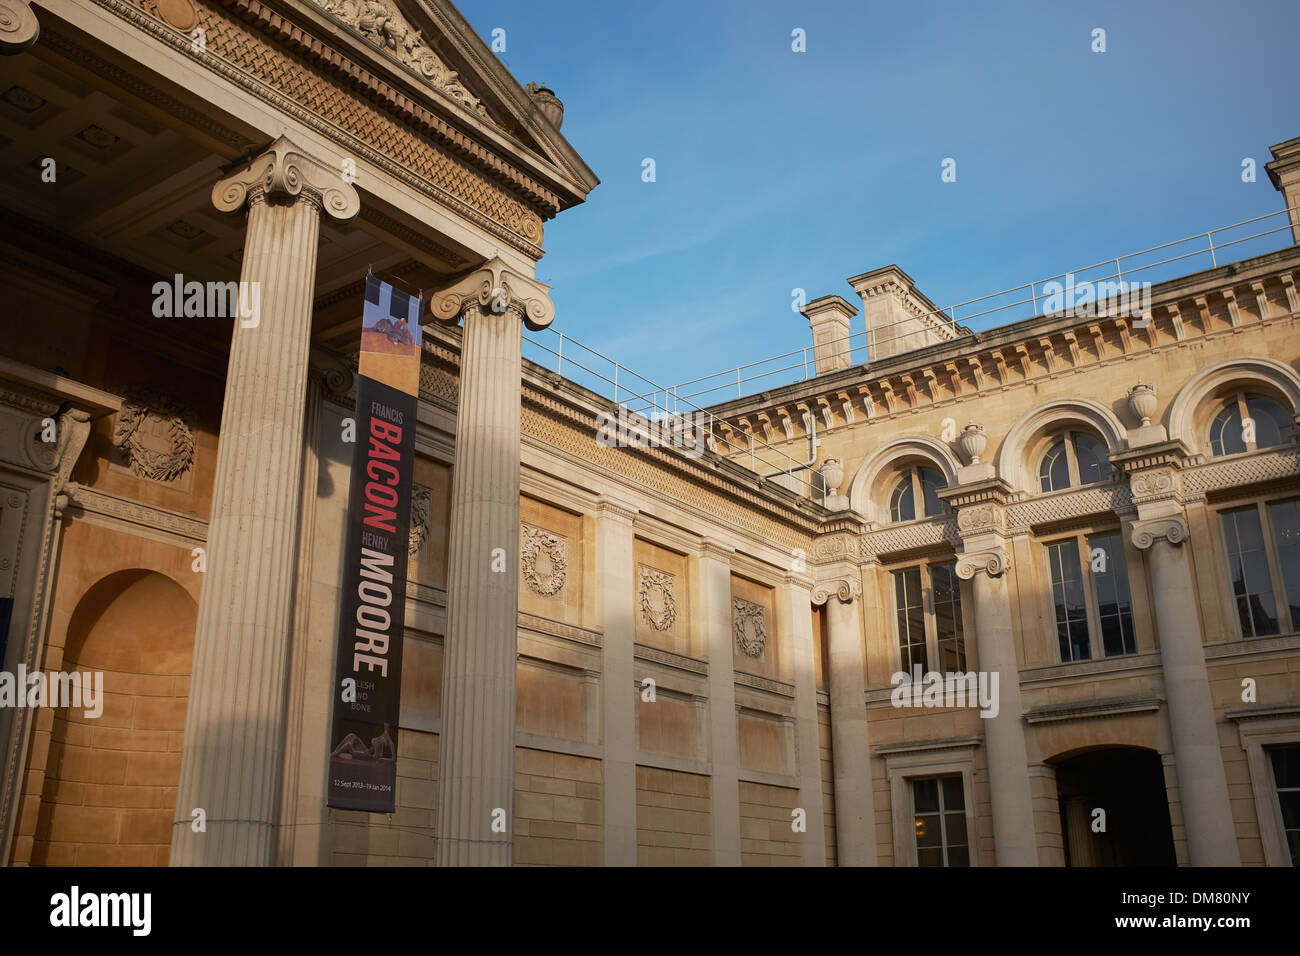 Exterior of the Ashmolean Museum in Oxford city centre - Stock Image